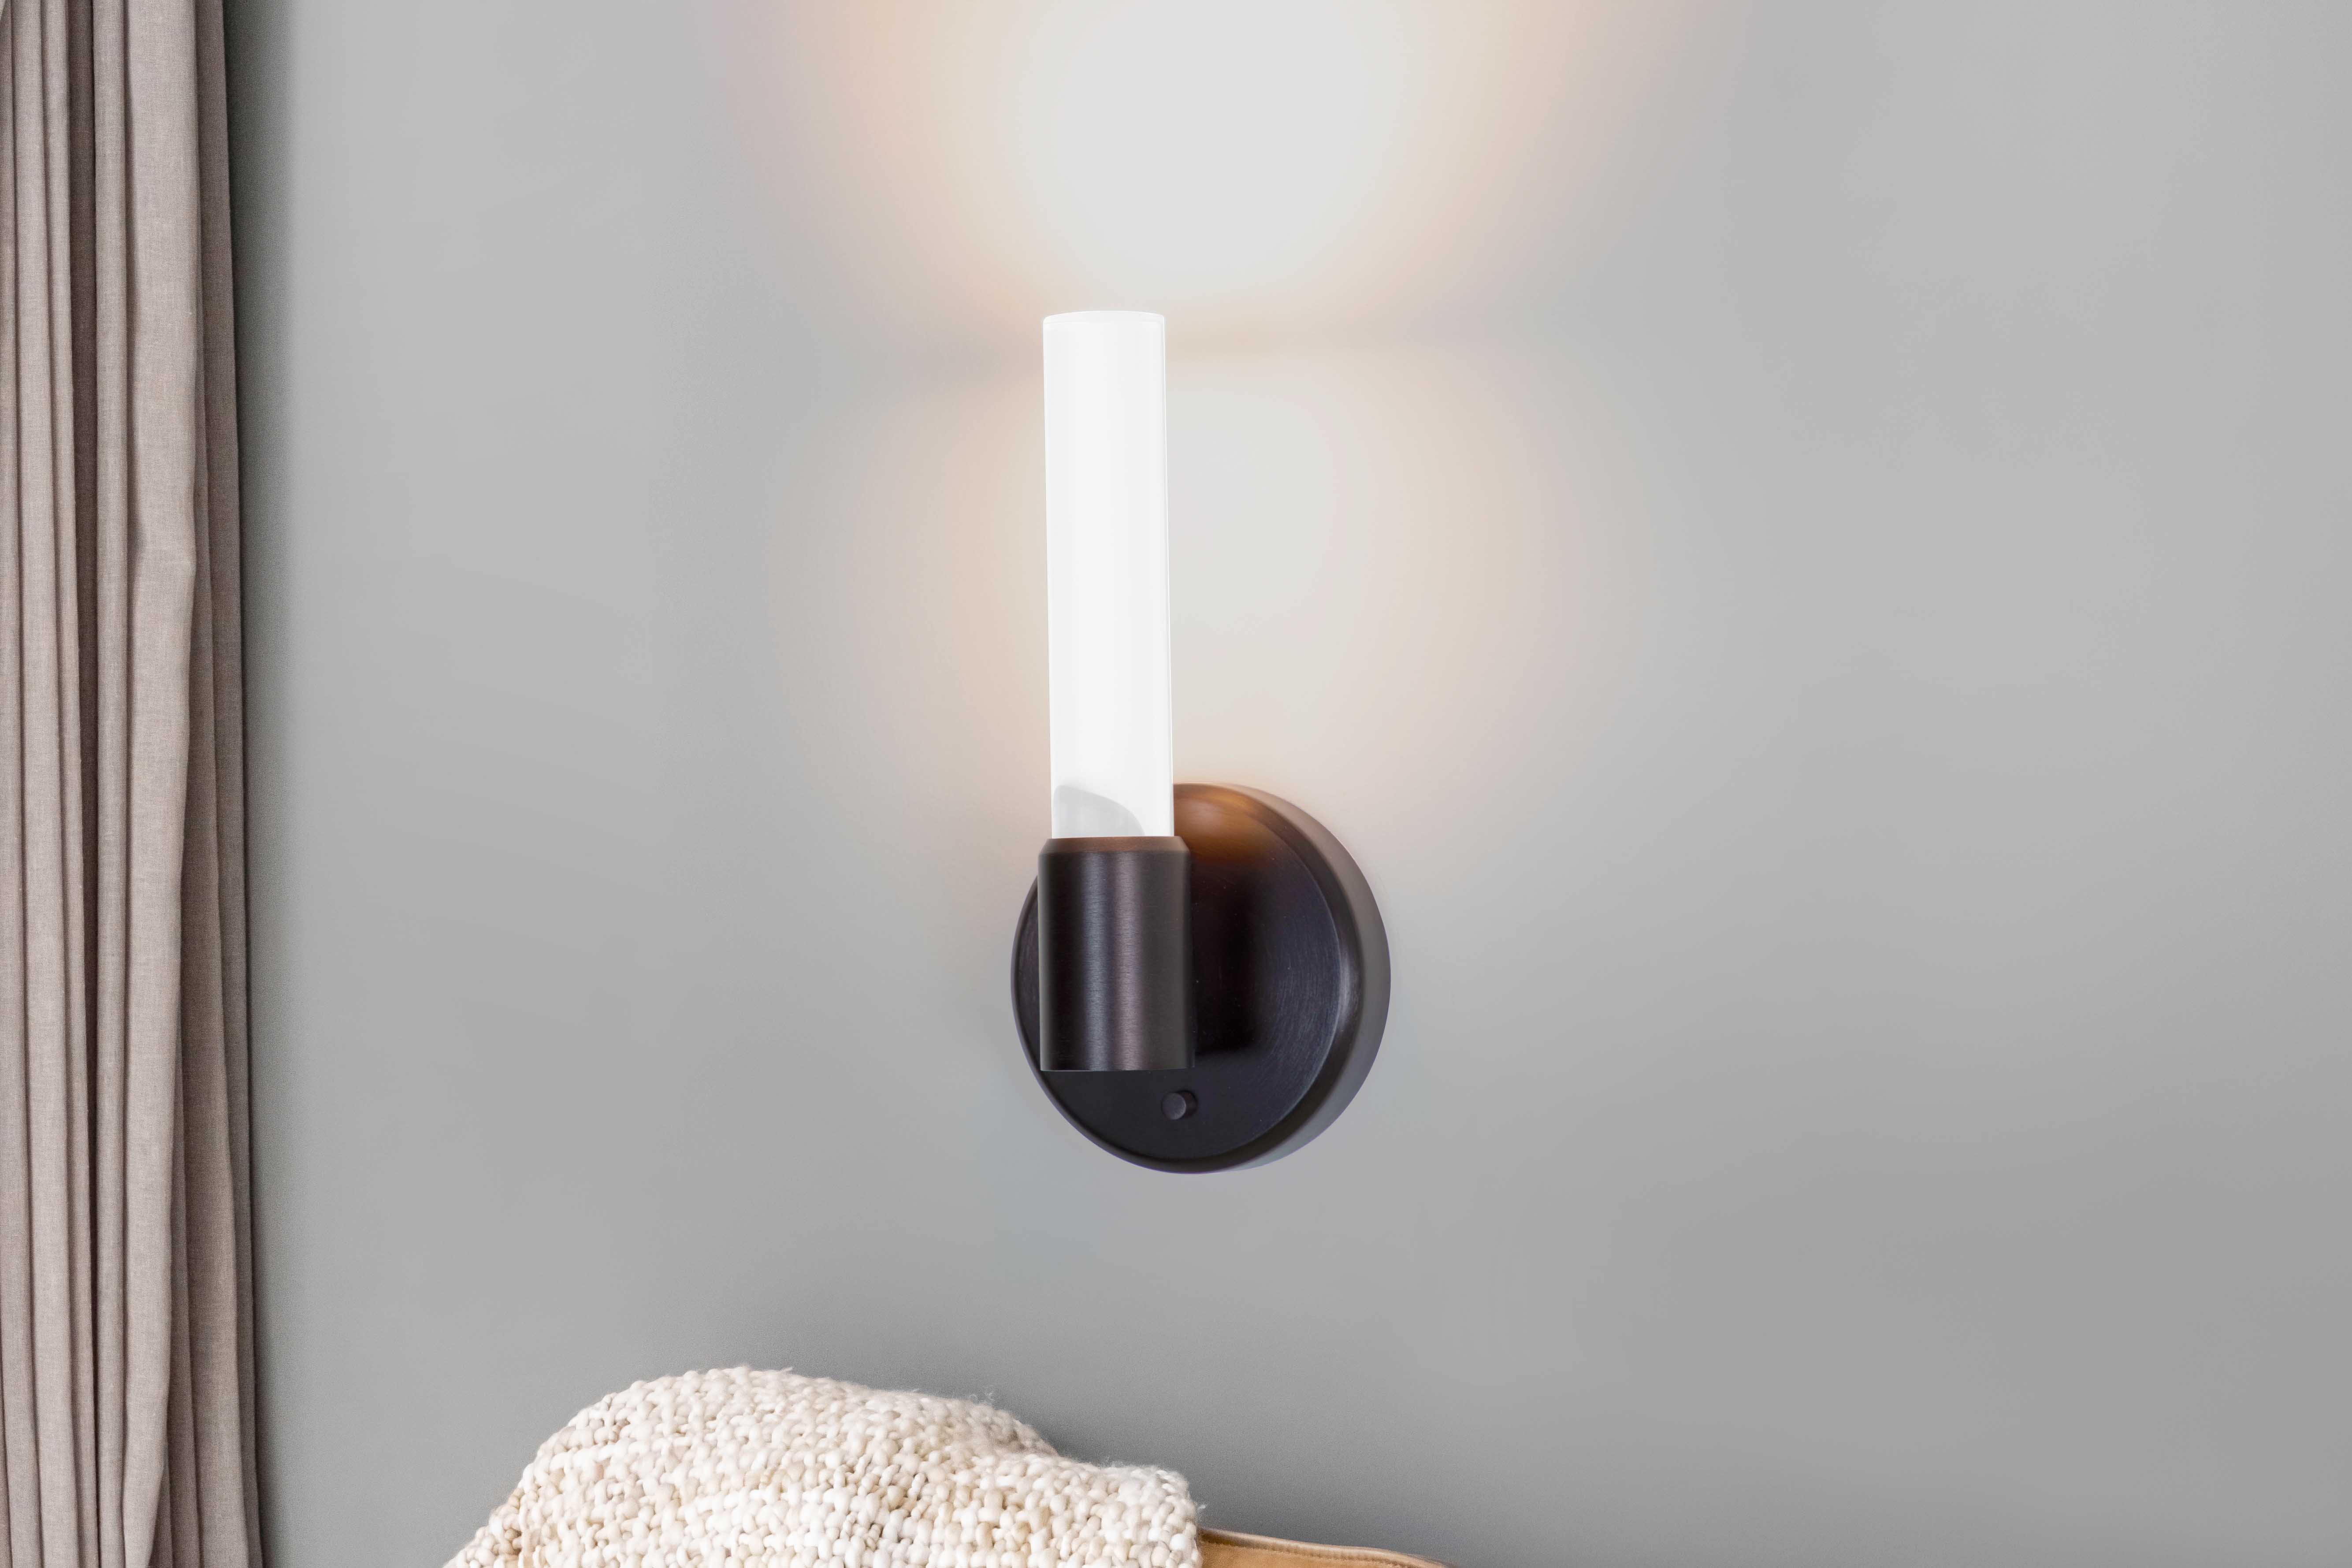 Theo single and double rod candelabra style LED wall sconces